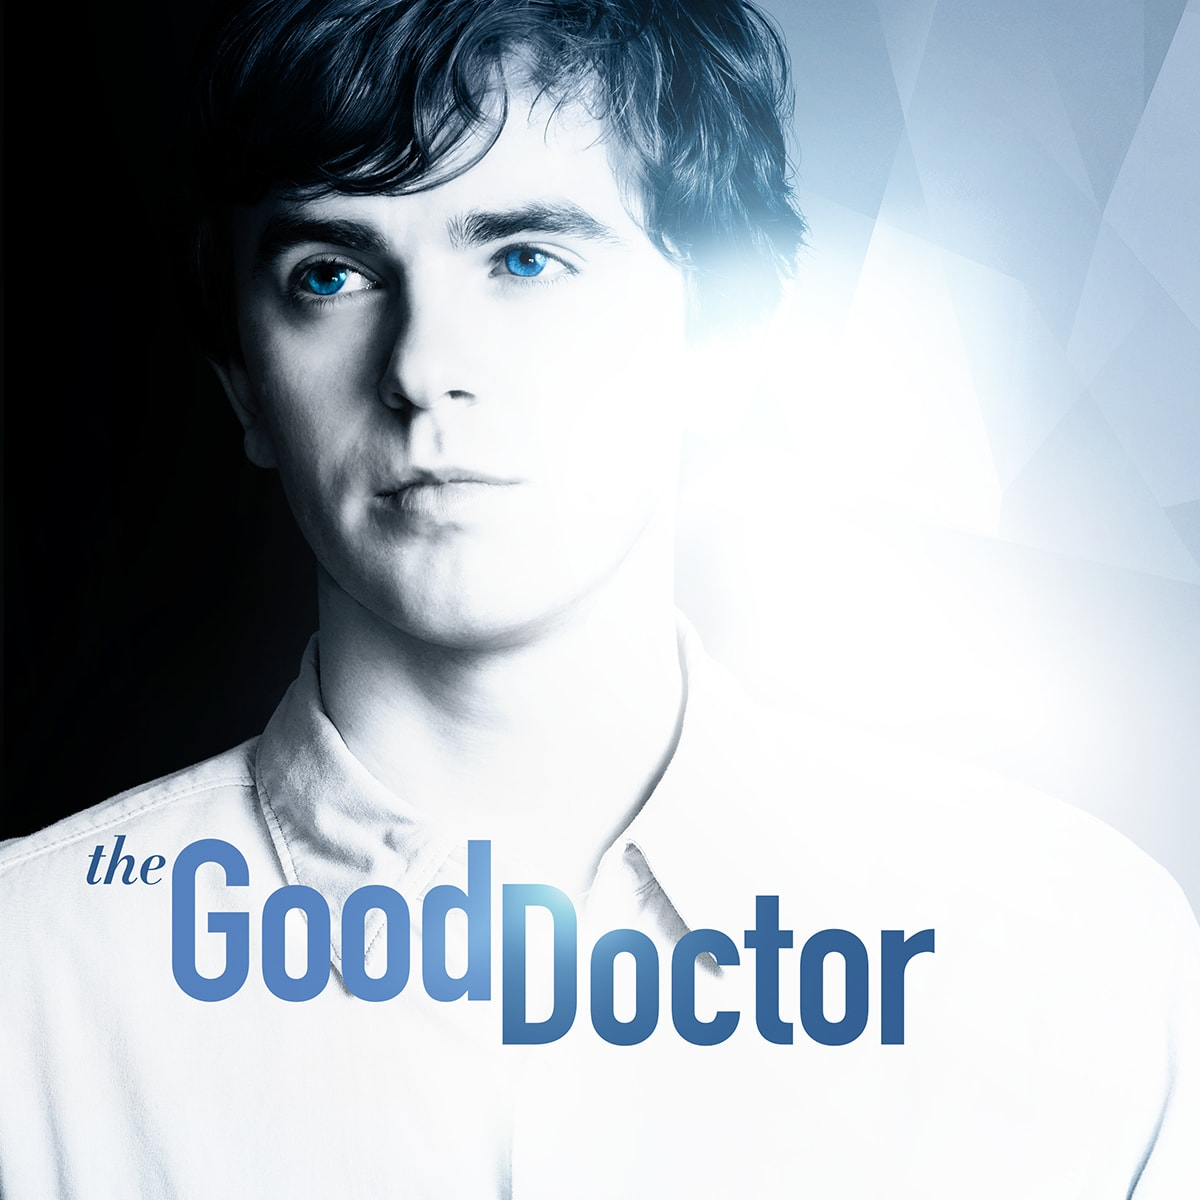 the good doctor - photo #16